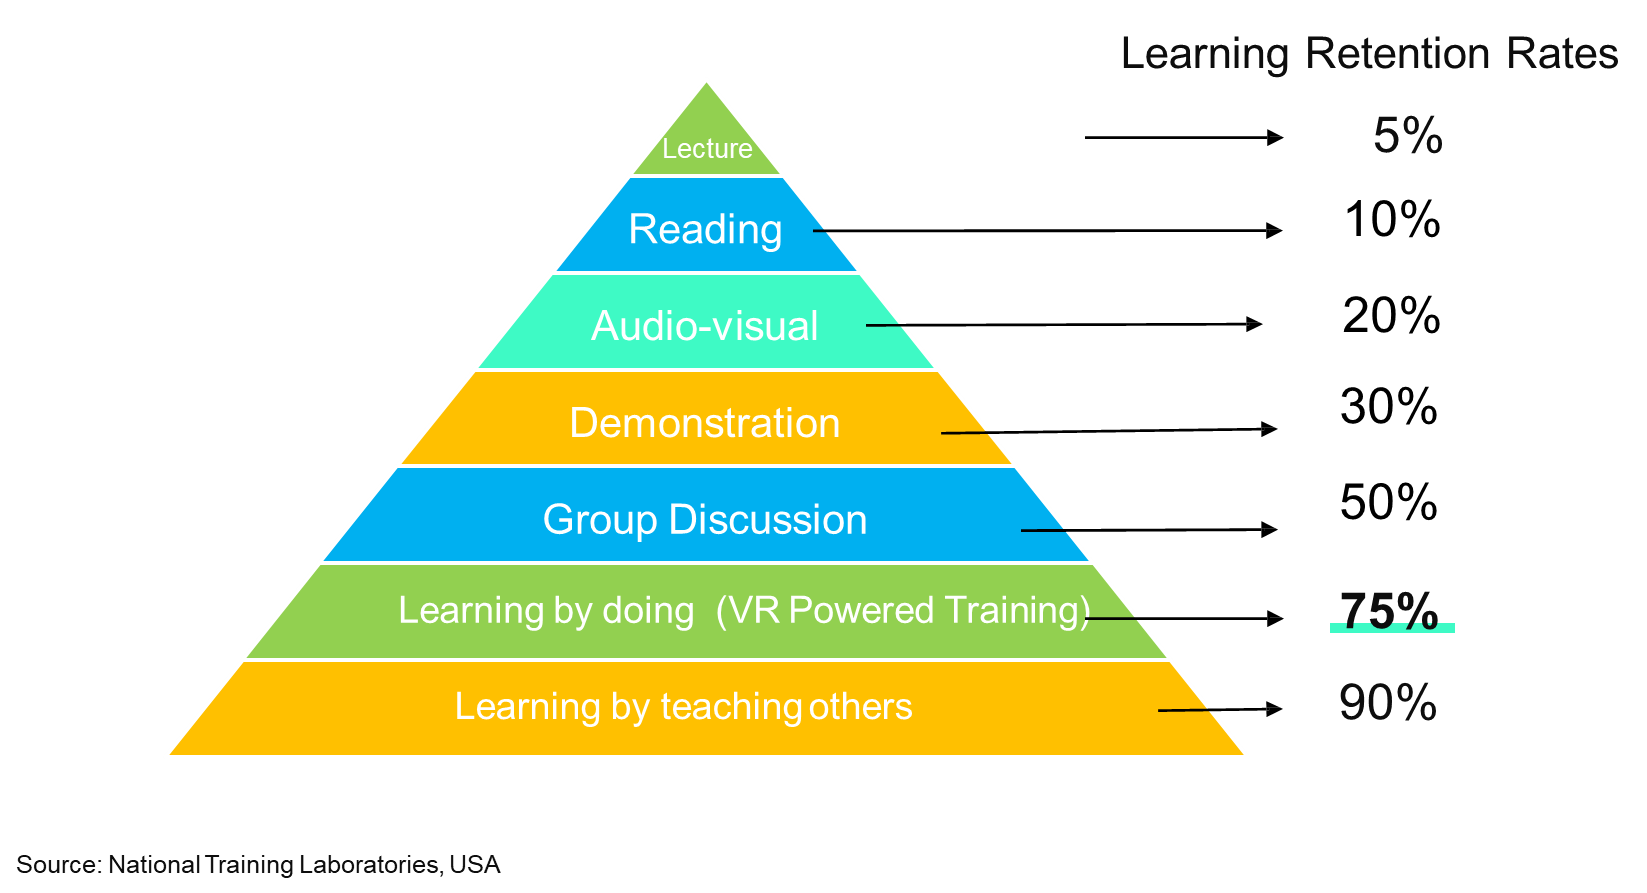 chart showing learning retention rates